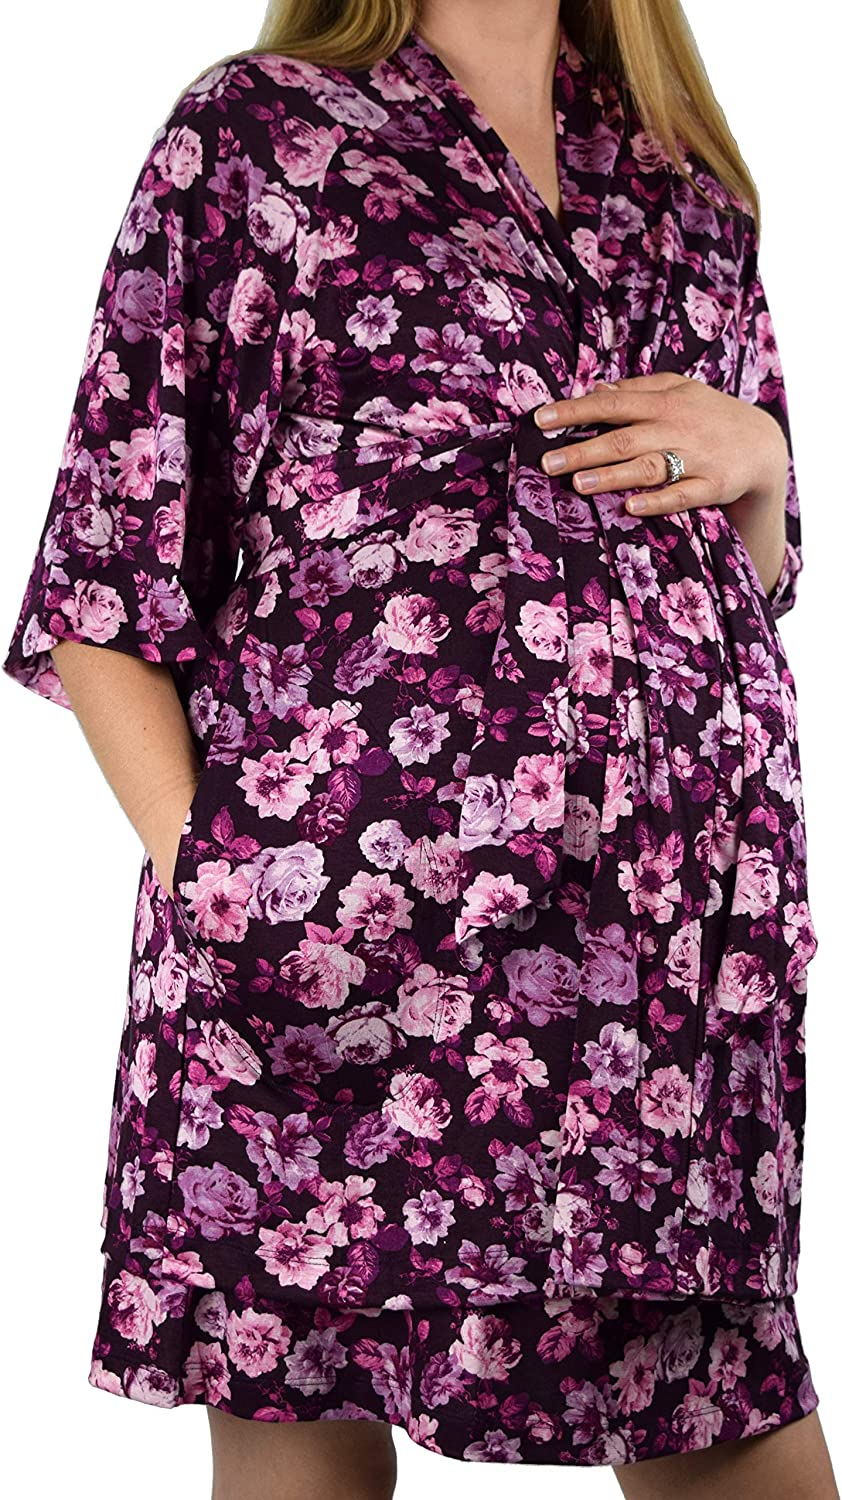 Embrace Your Bump 2 in 1 Super Soft Maternity /& Nursing Nightgown /& Robe Set Purple Floral, Large